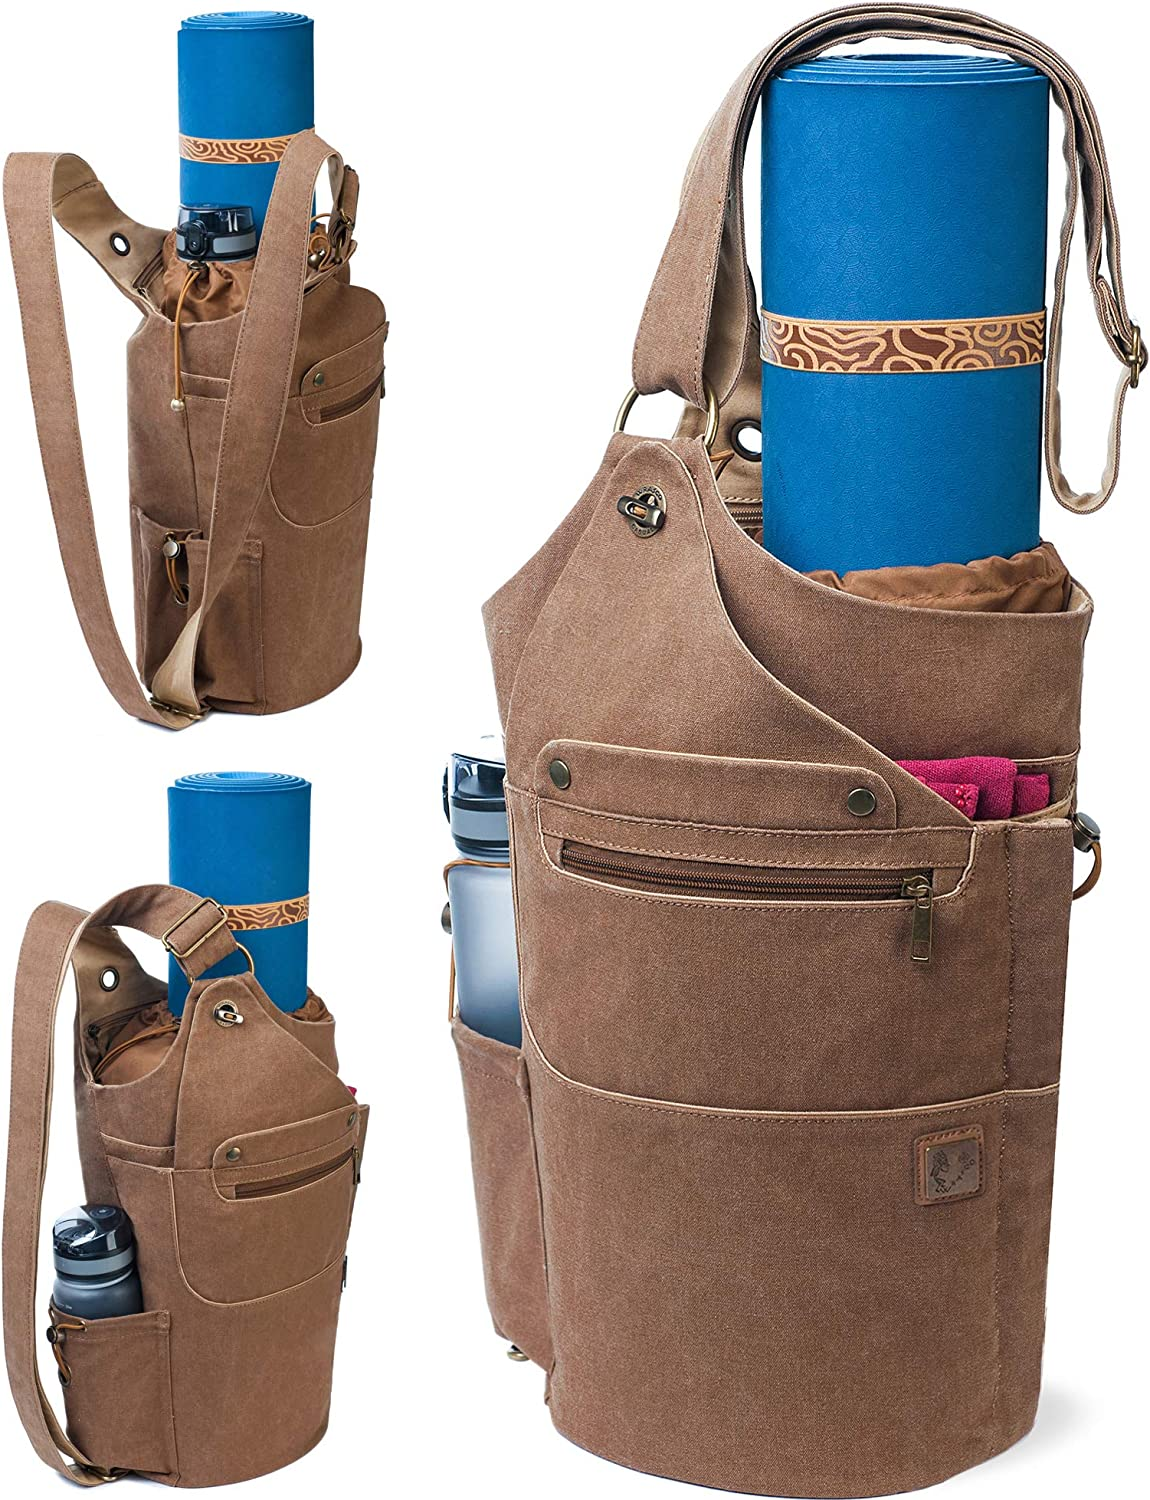 WRASCO Yoga Mat Bag Canvas Casual Yoga Backpack Convertible Yoga Mat Tote Sling Carrier - Fits Most Mat Sizes - Yoga Bags and Carriers for Women & Men ...